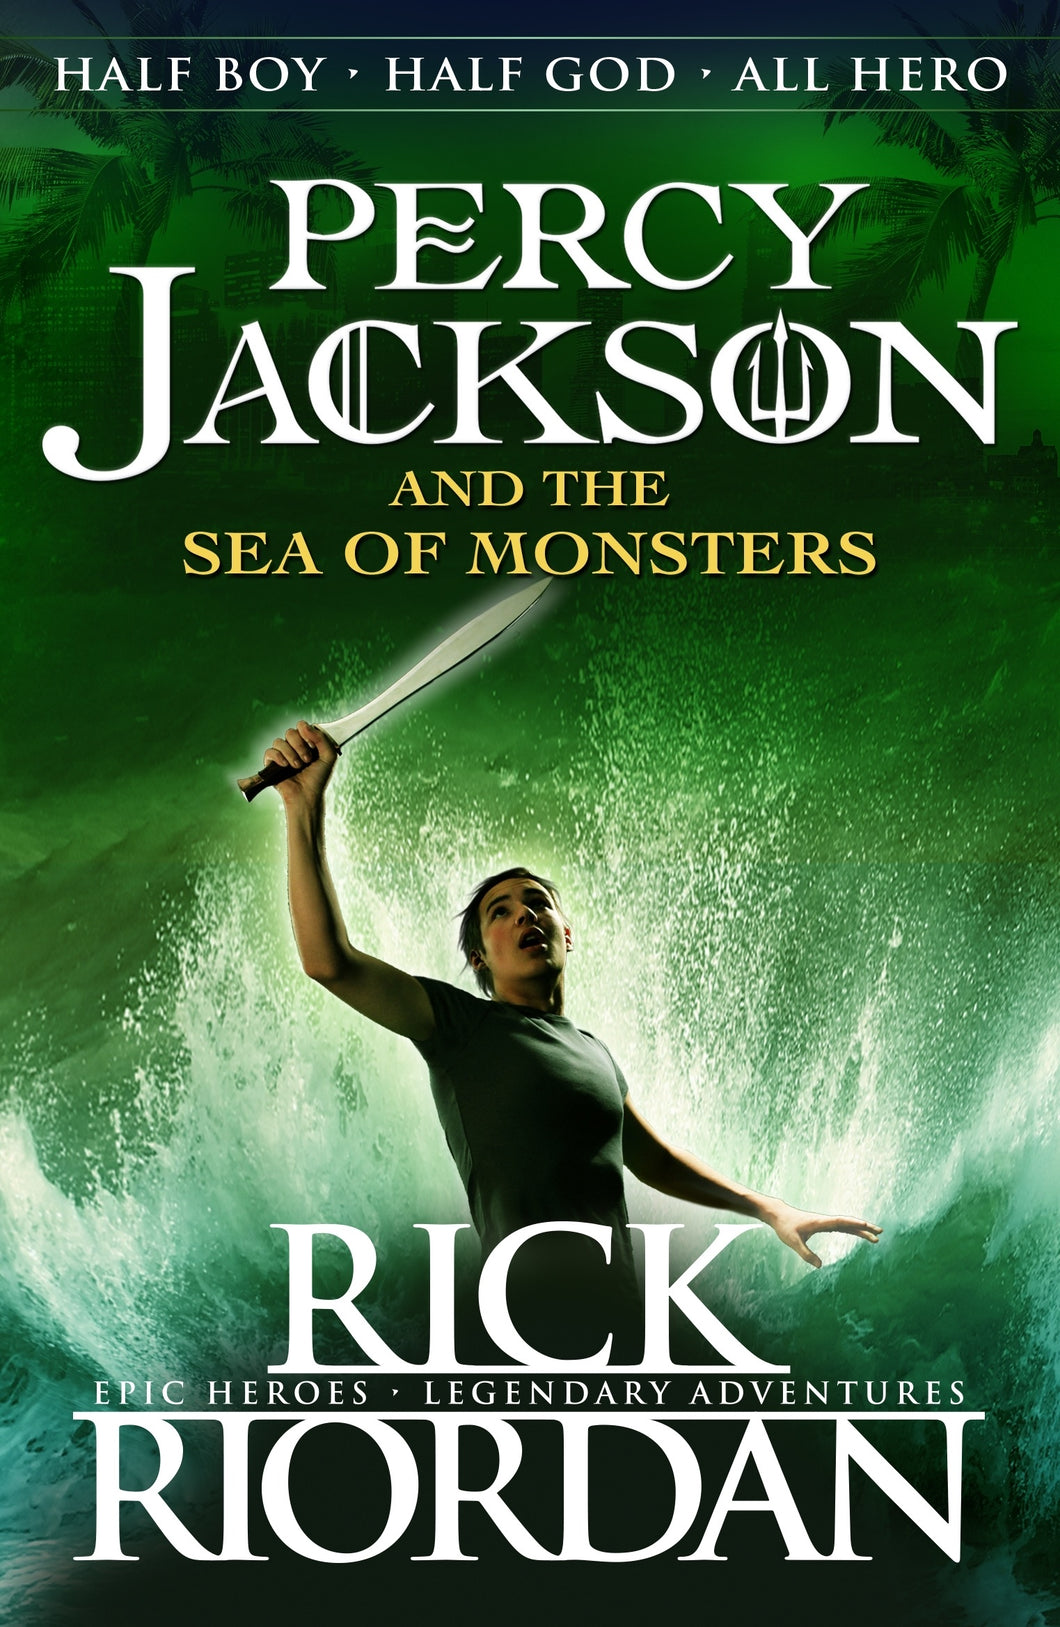 Percy Jackson and the Sea of Monsters (Book #2) by Rick Riordan